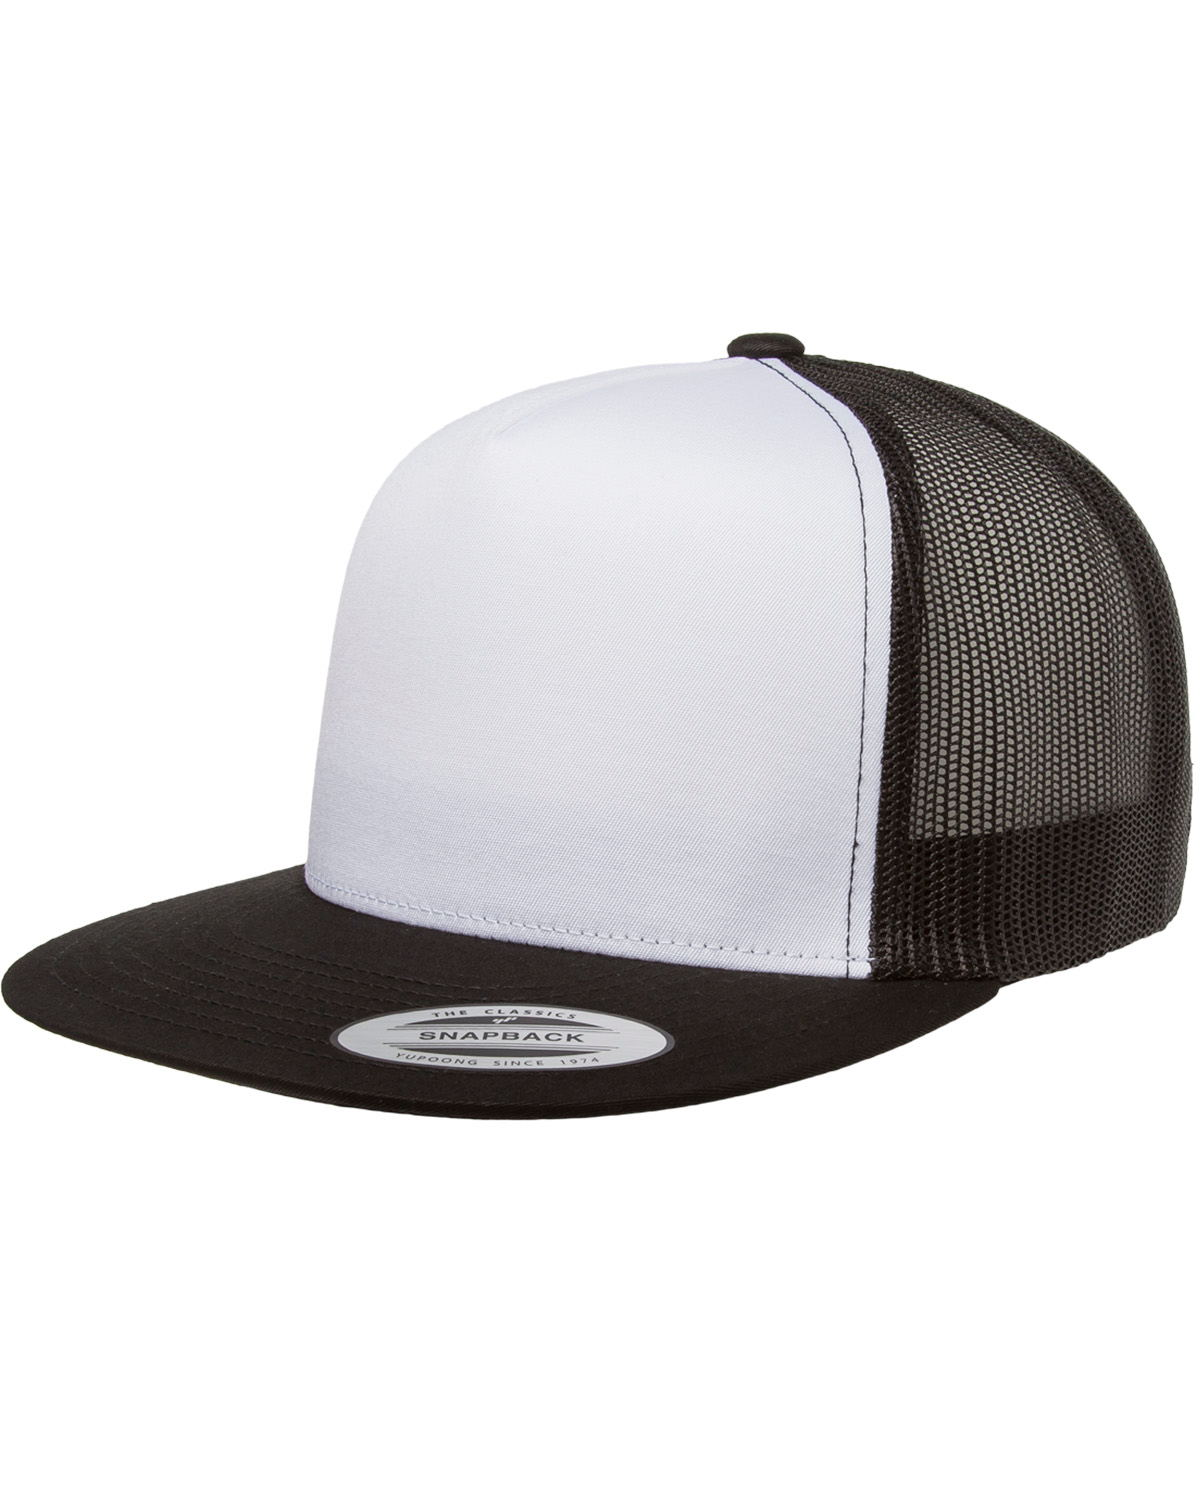 Yupoong 6006W - Adult Classic Trucker with White Front ...